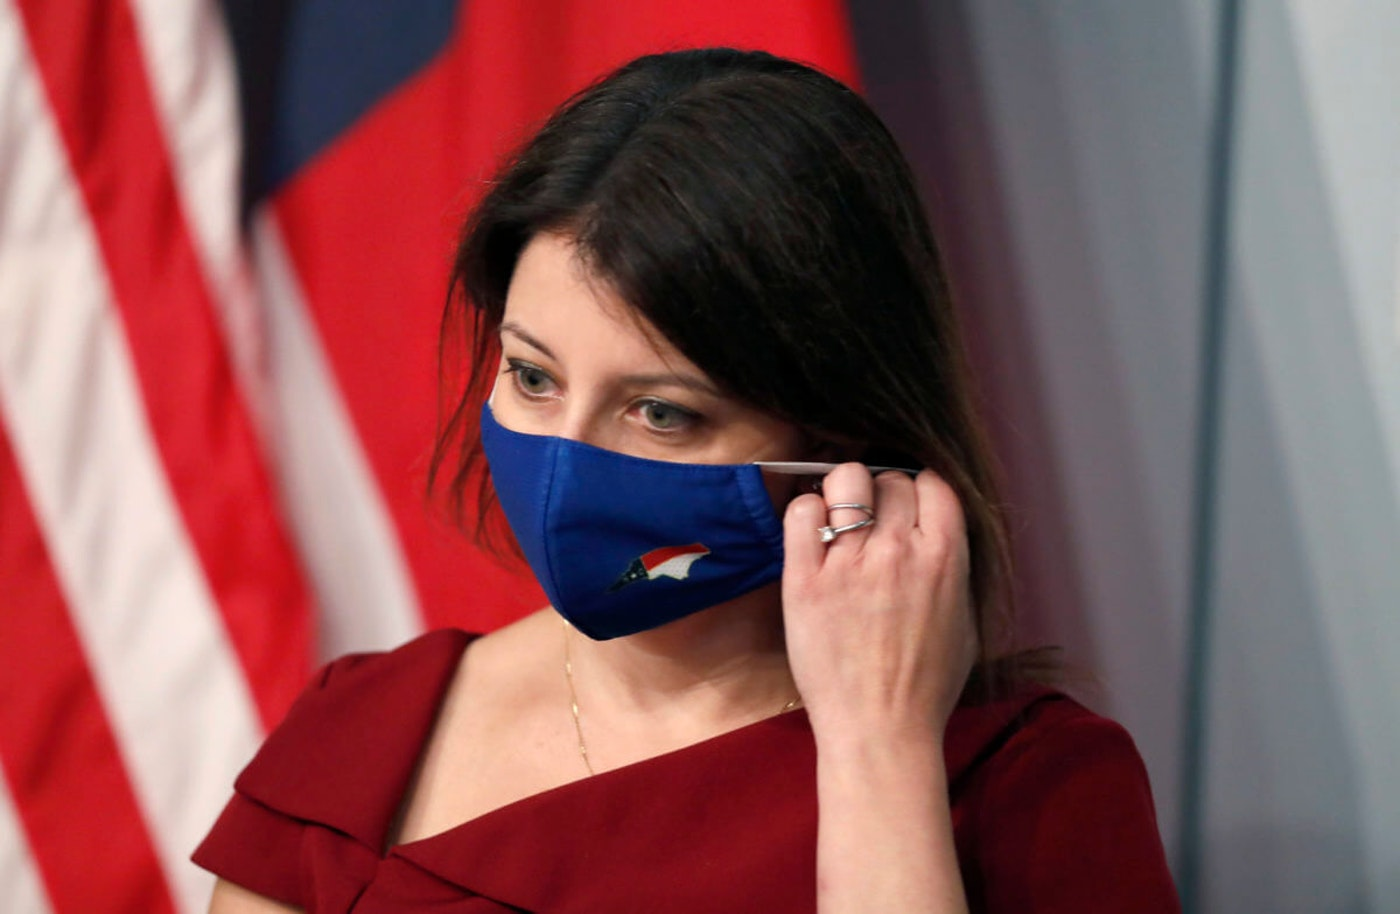 NC DHHS Secretary Mandy Cohen dons a mask this month during a coronavirus media briefing. (Image via NC DPS)